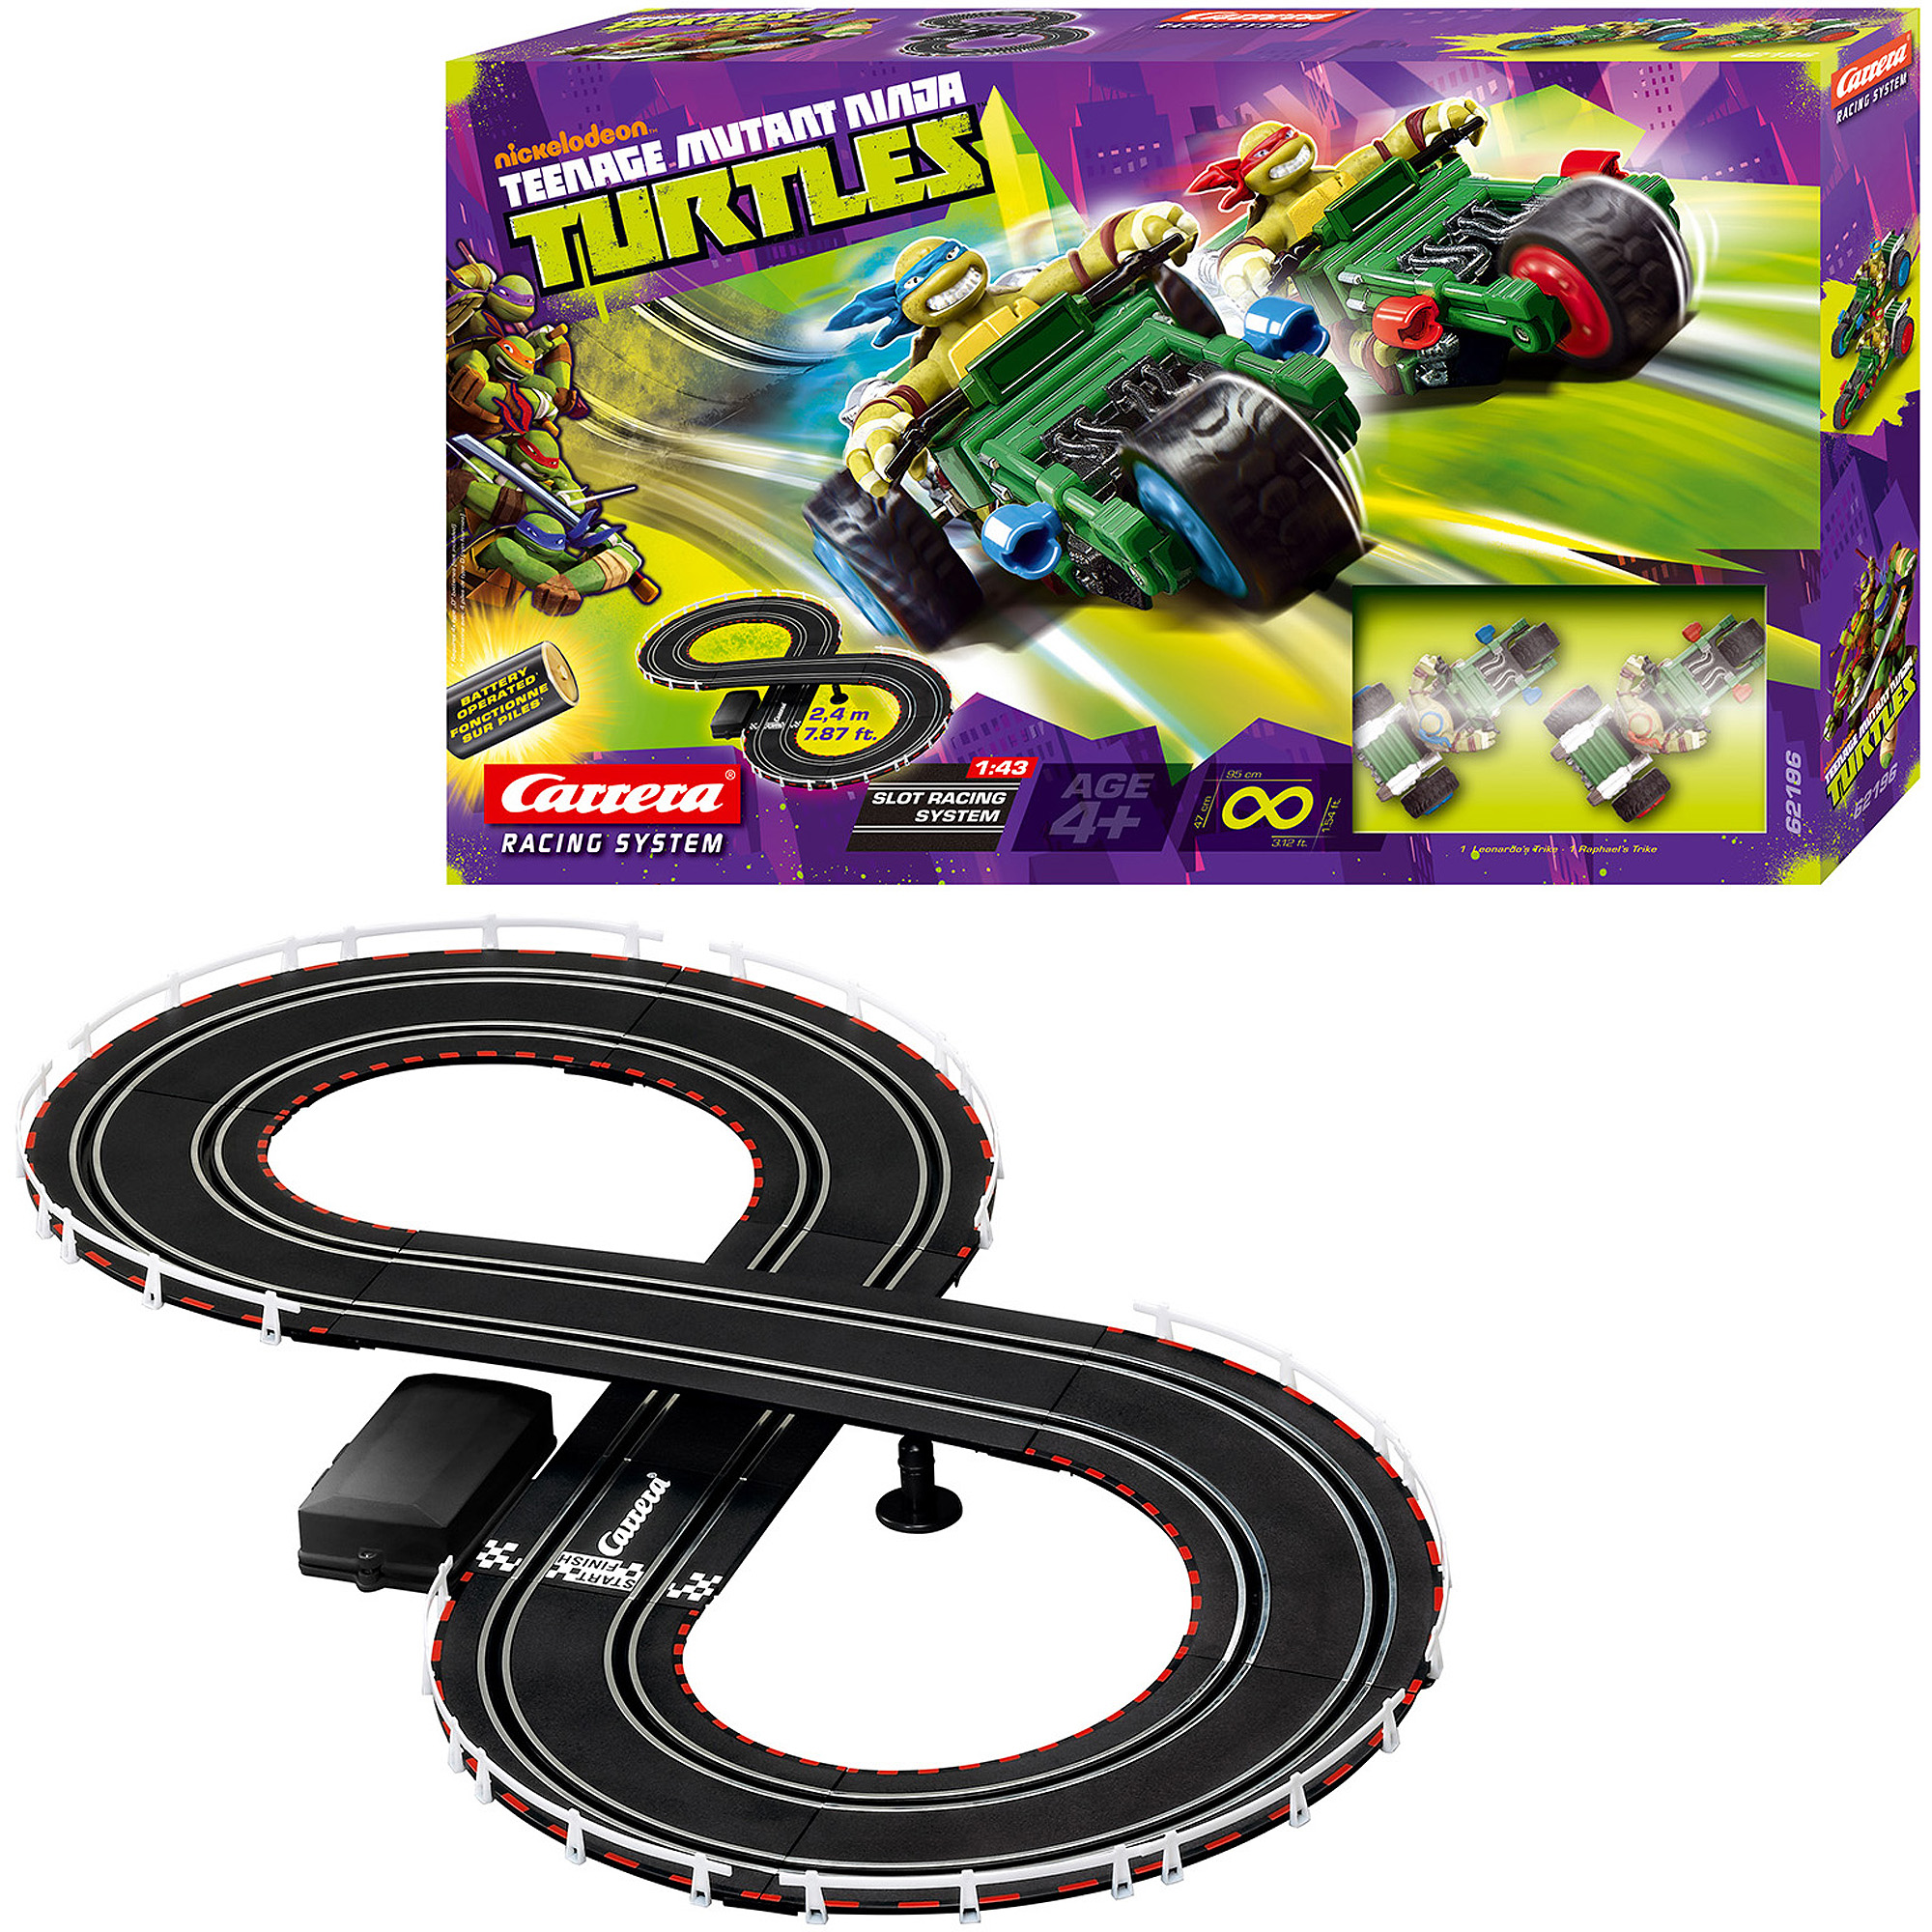 Carrera Nickelodeon Teenage Mutant Ninja Turtles Racing System